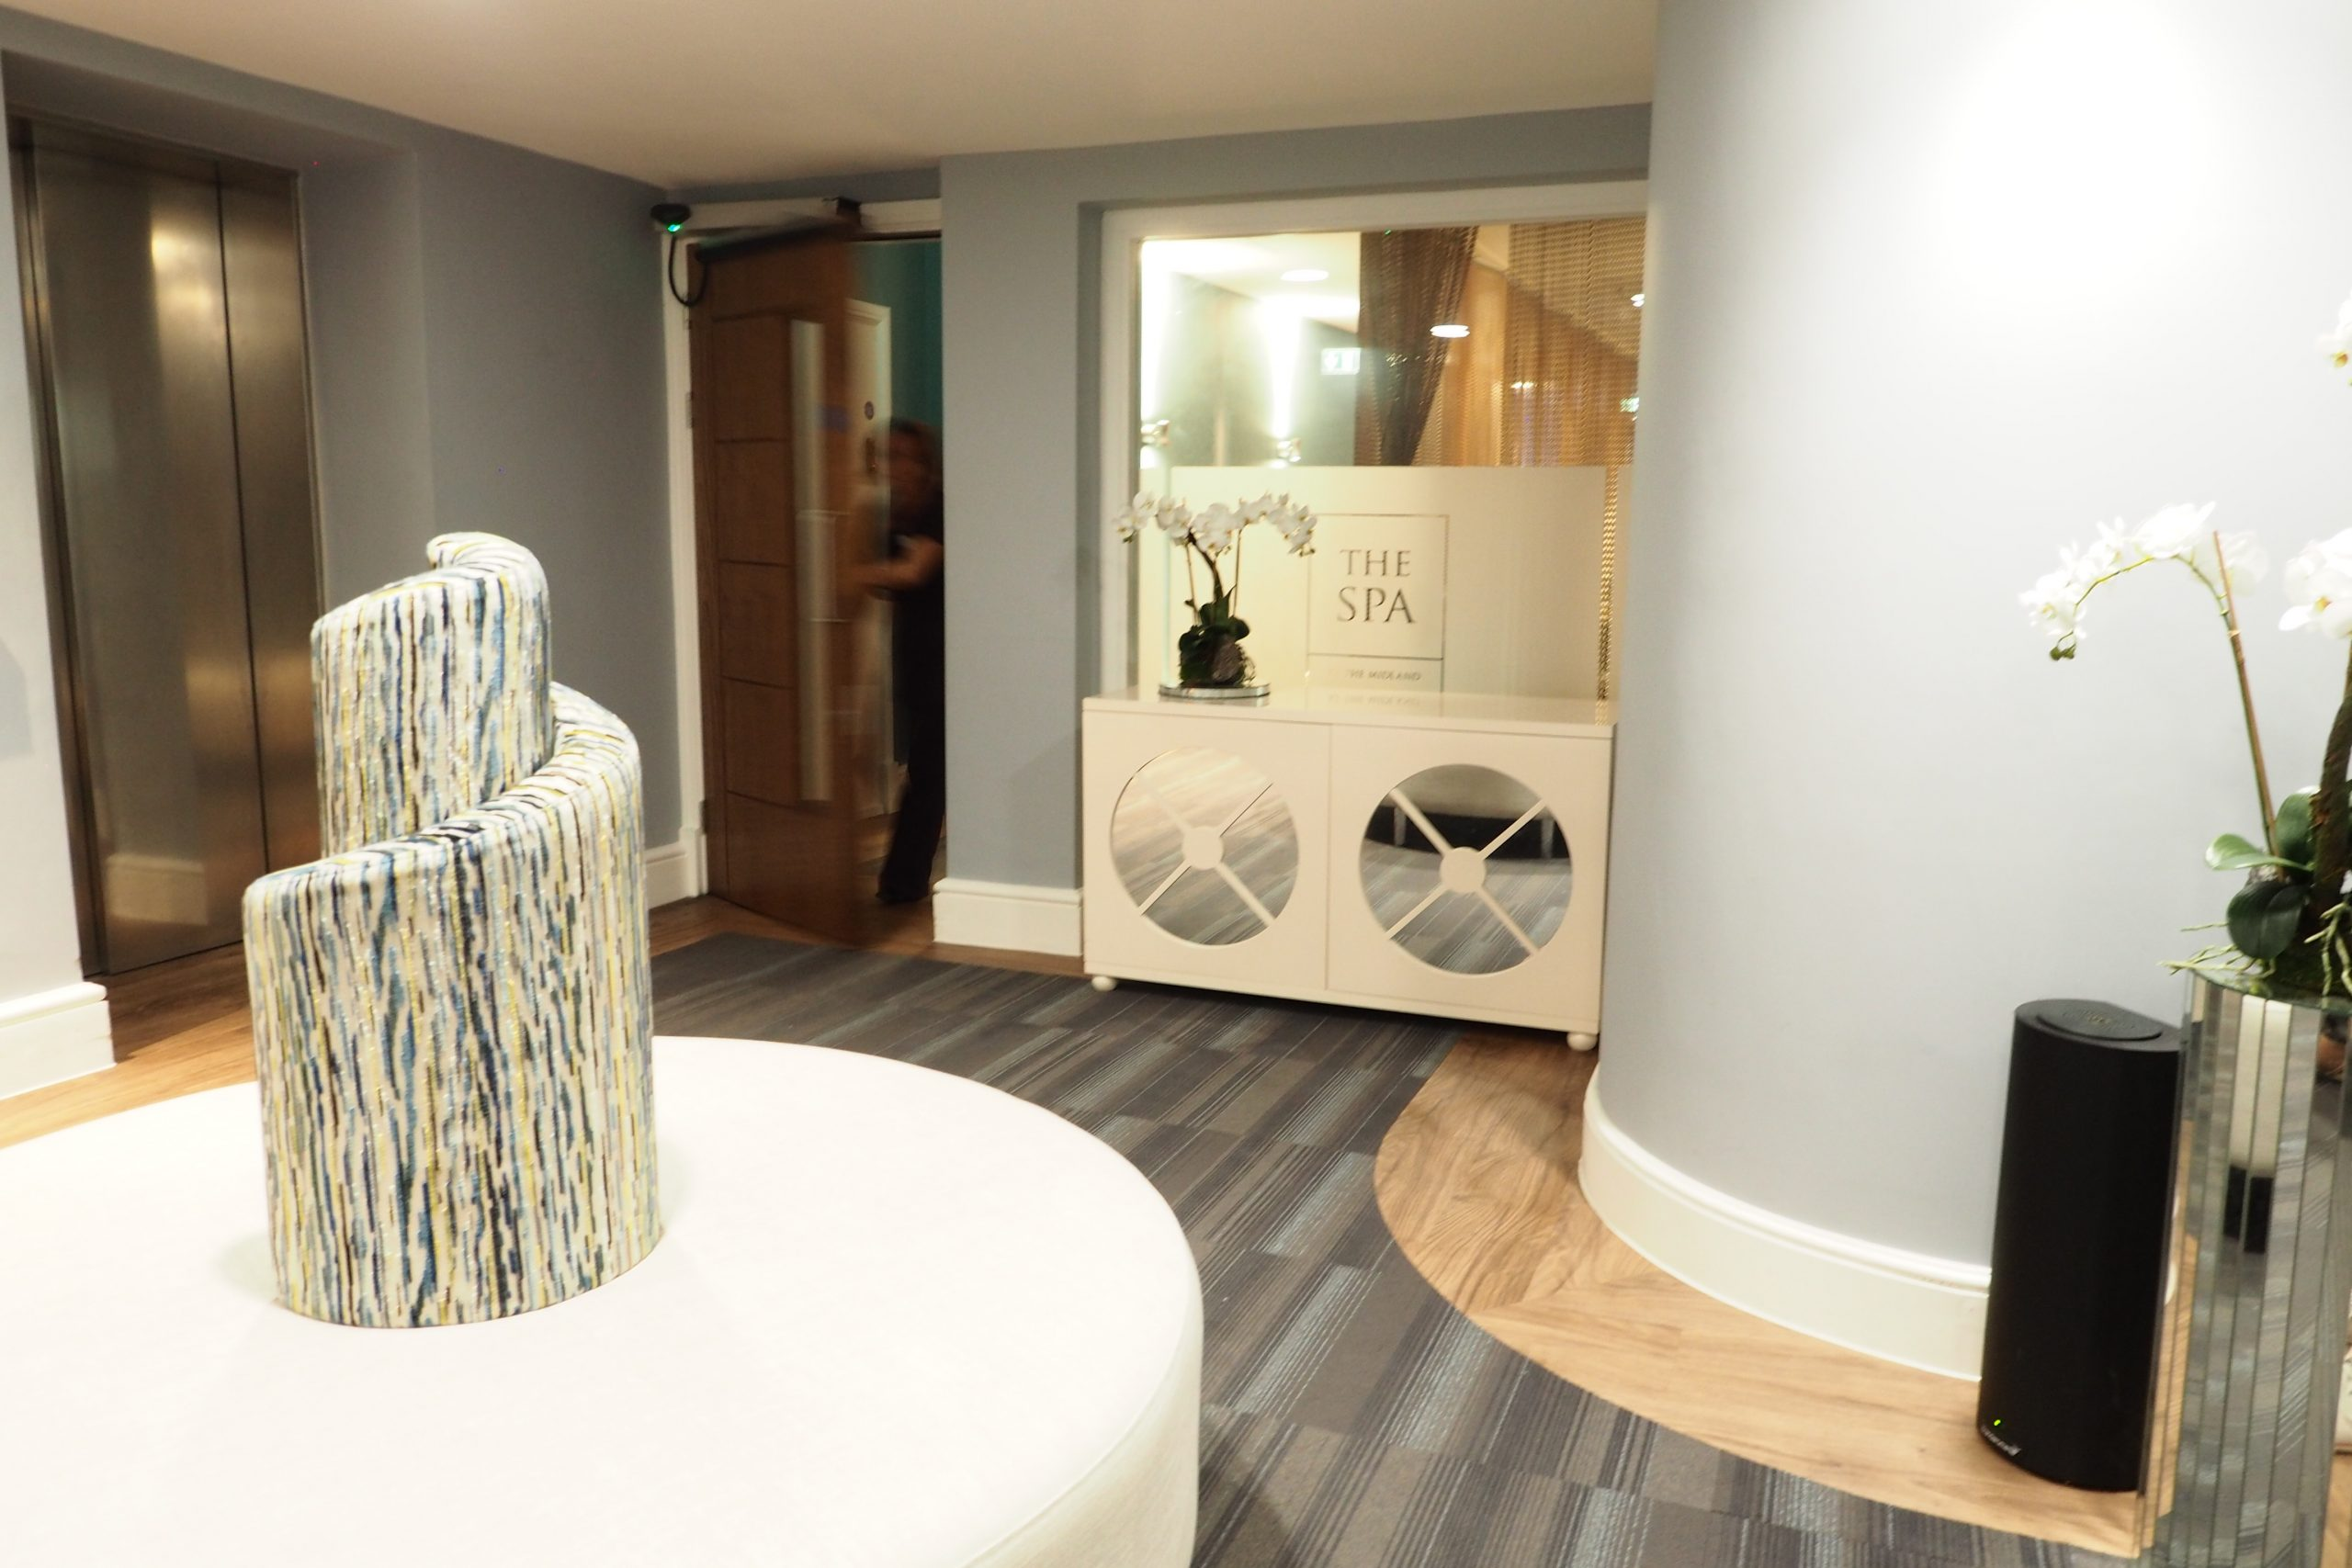 The Midland Hotel Review, The Spa at The Midland, Mr Coopers Review